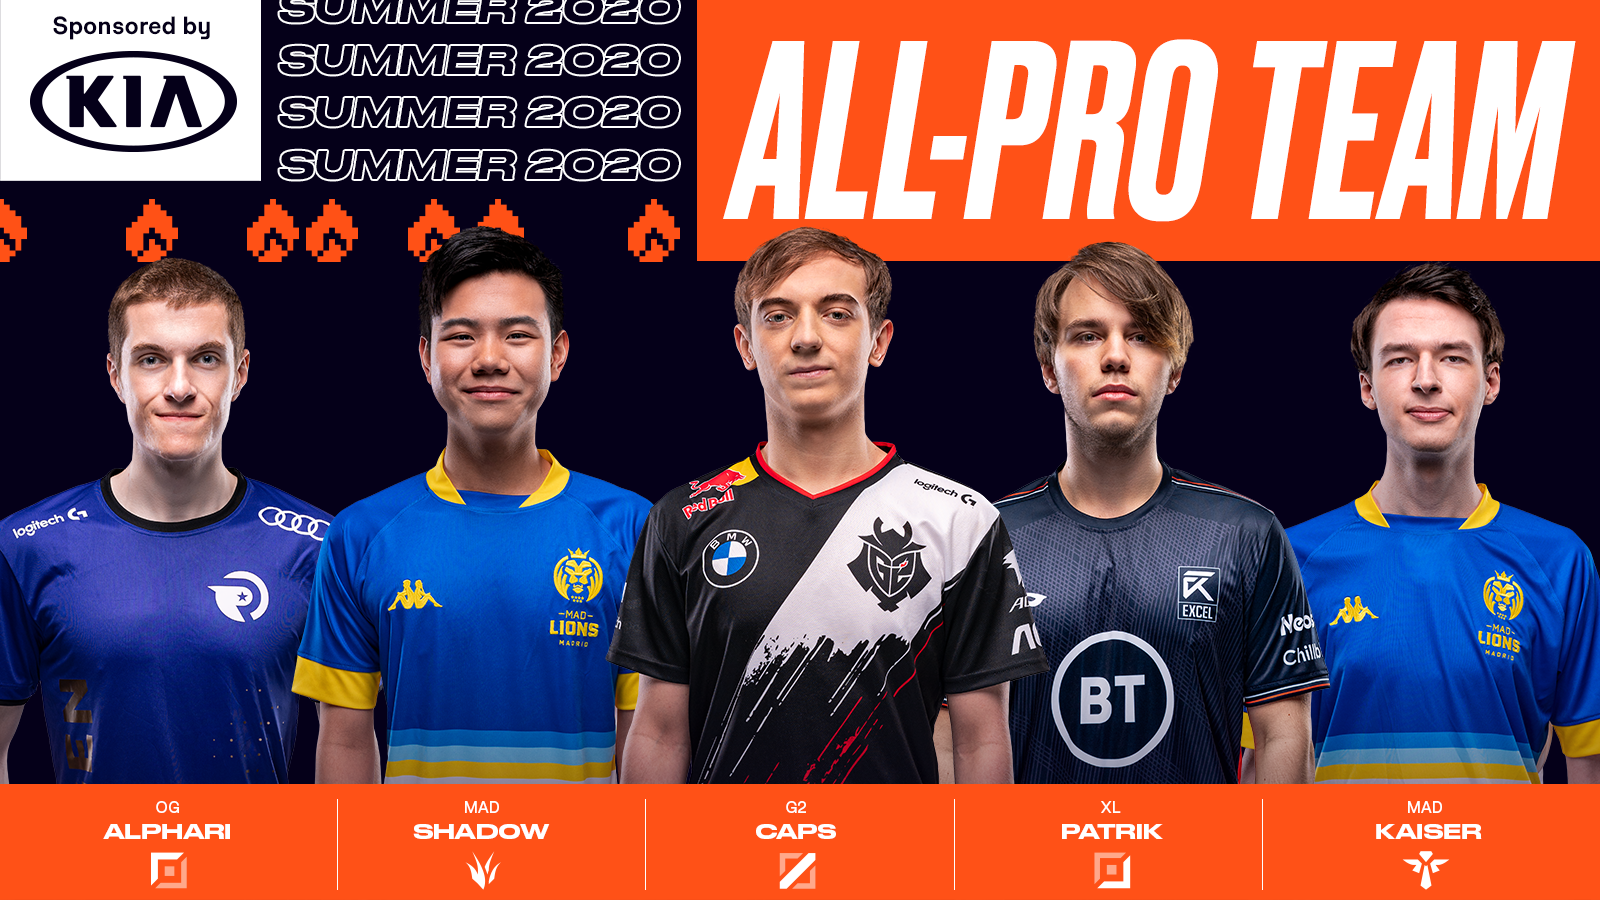 LEC's All-Pro team summer 2020 players